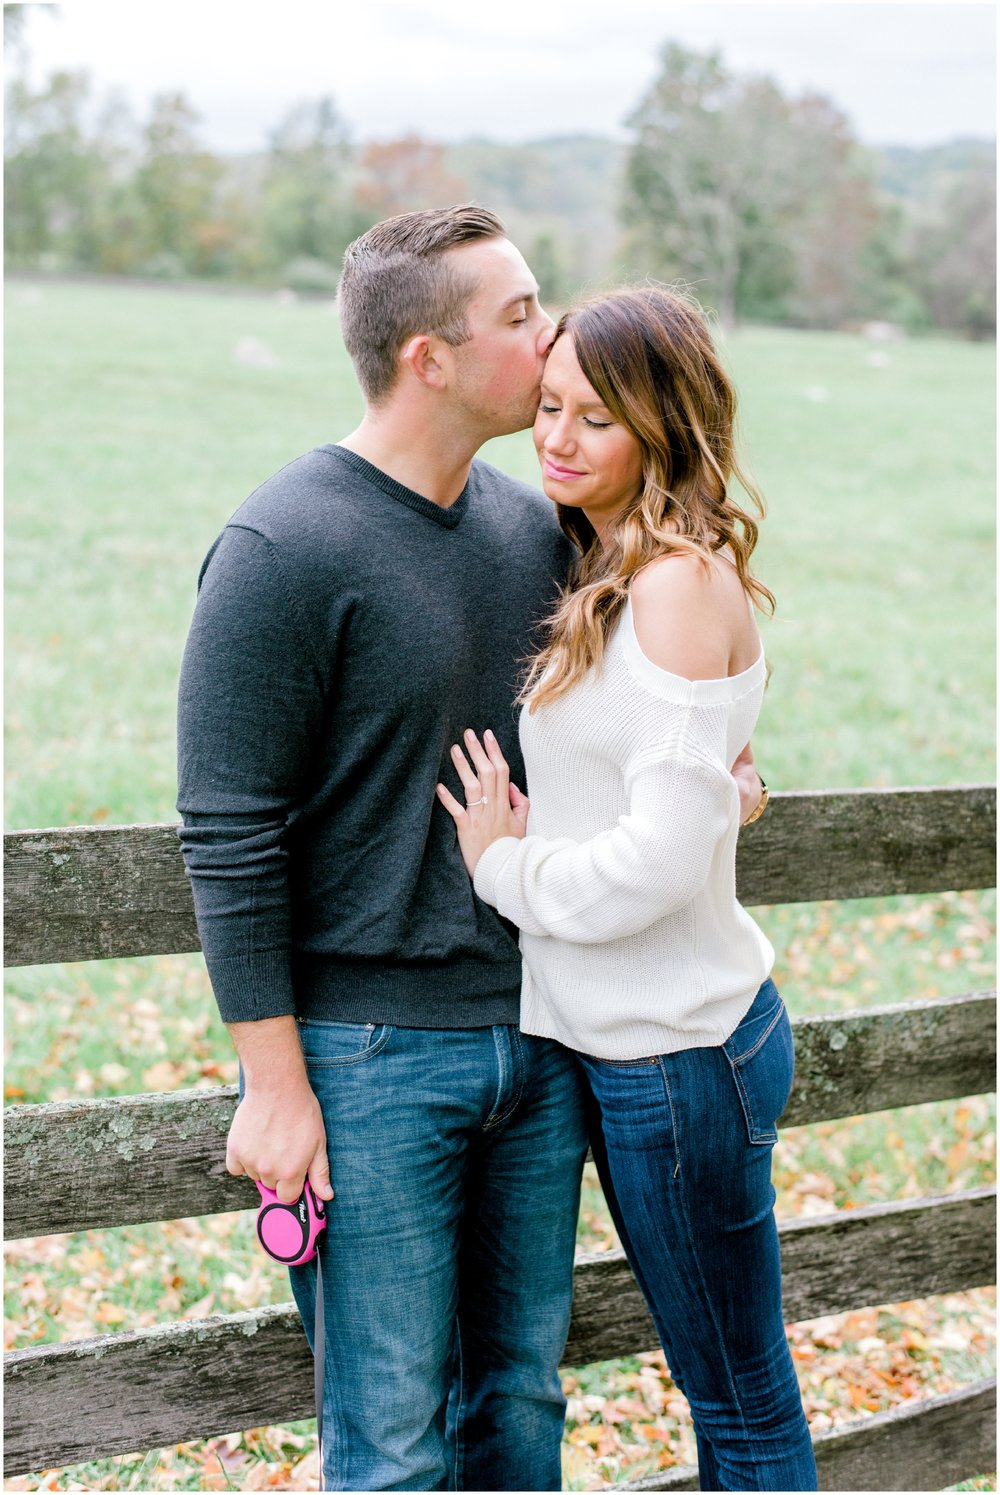 Fall Springton Manor Farm Engagement Session - Krista Brackin Photography_0018.jpg